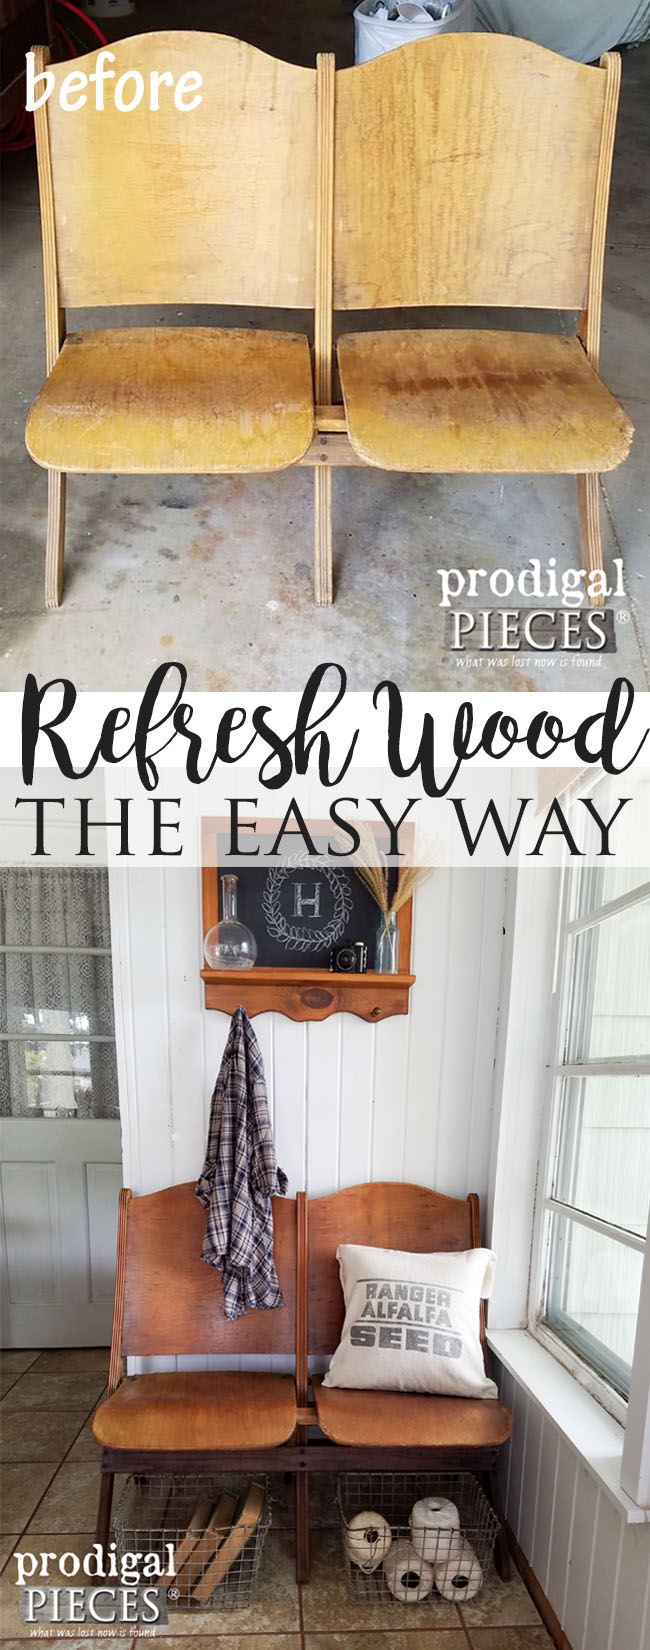 How to Refresh Old Wood with One Ingredient by Prodigal Pieces | www.prodigalpieces.com